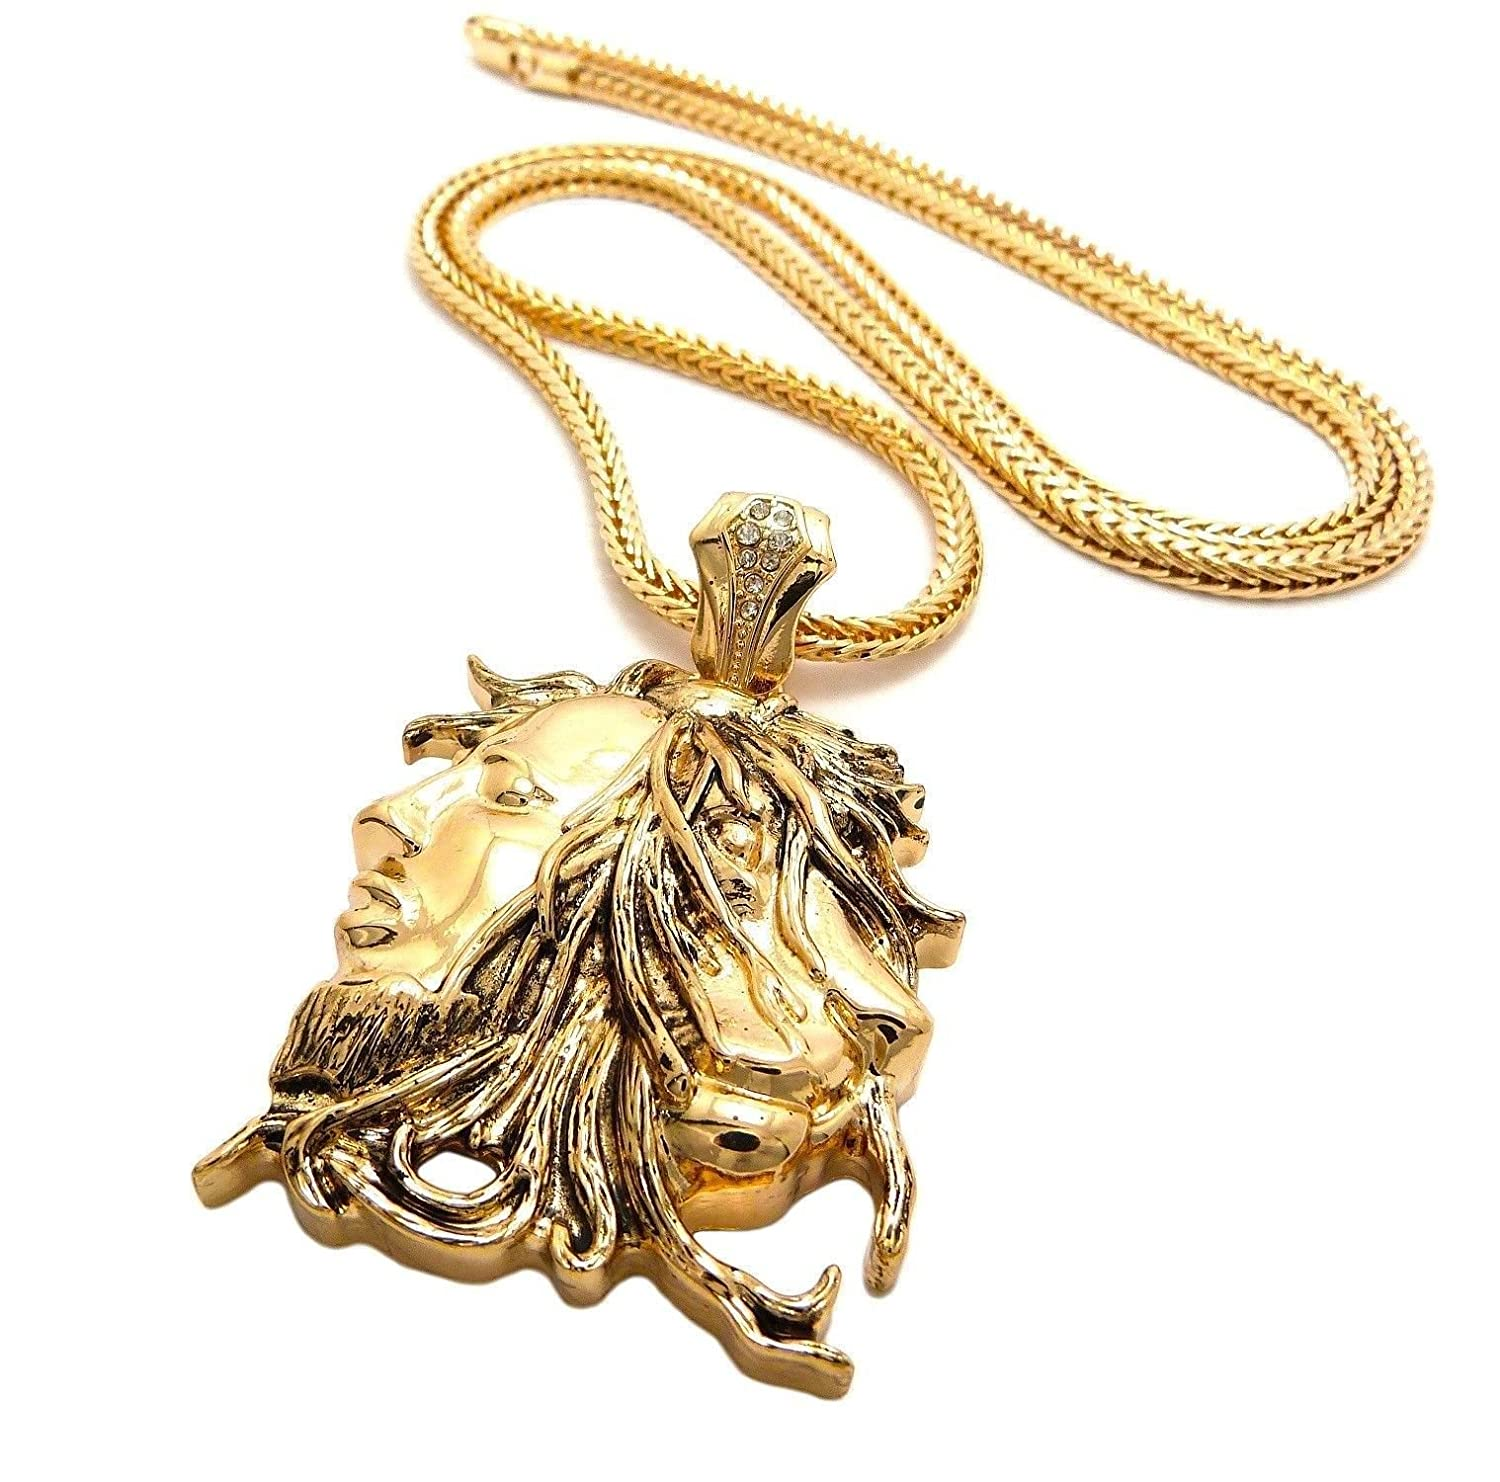 jc gold download necklace silver marcozo white products lion pendant